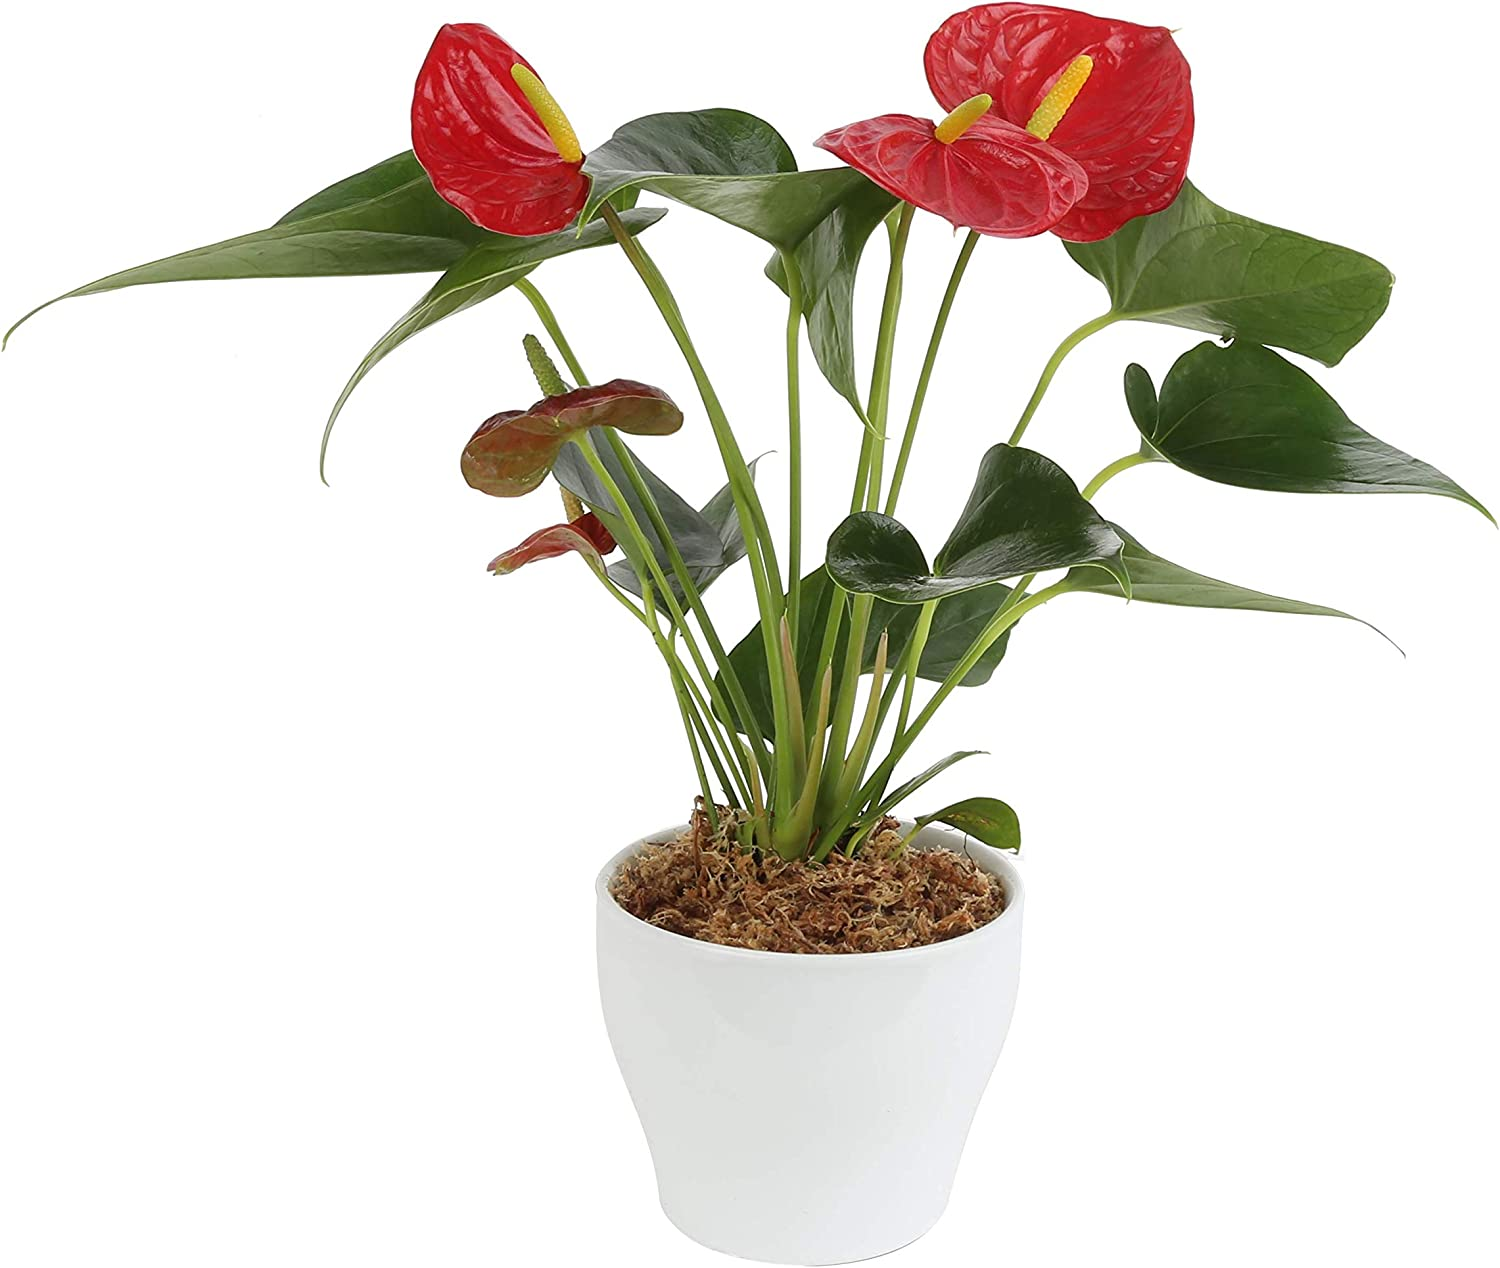 Costa Farms Blooming Anthurium Live Indoor Plant 12 to 14-Inches Tall, Ships in White Ceramic Planter, Gift, Fresh From Our Farm or Home Décor